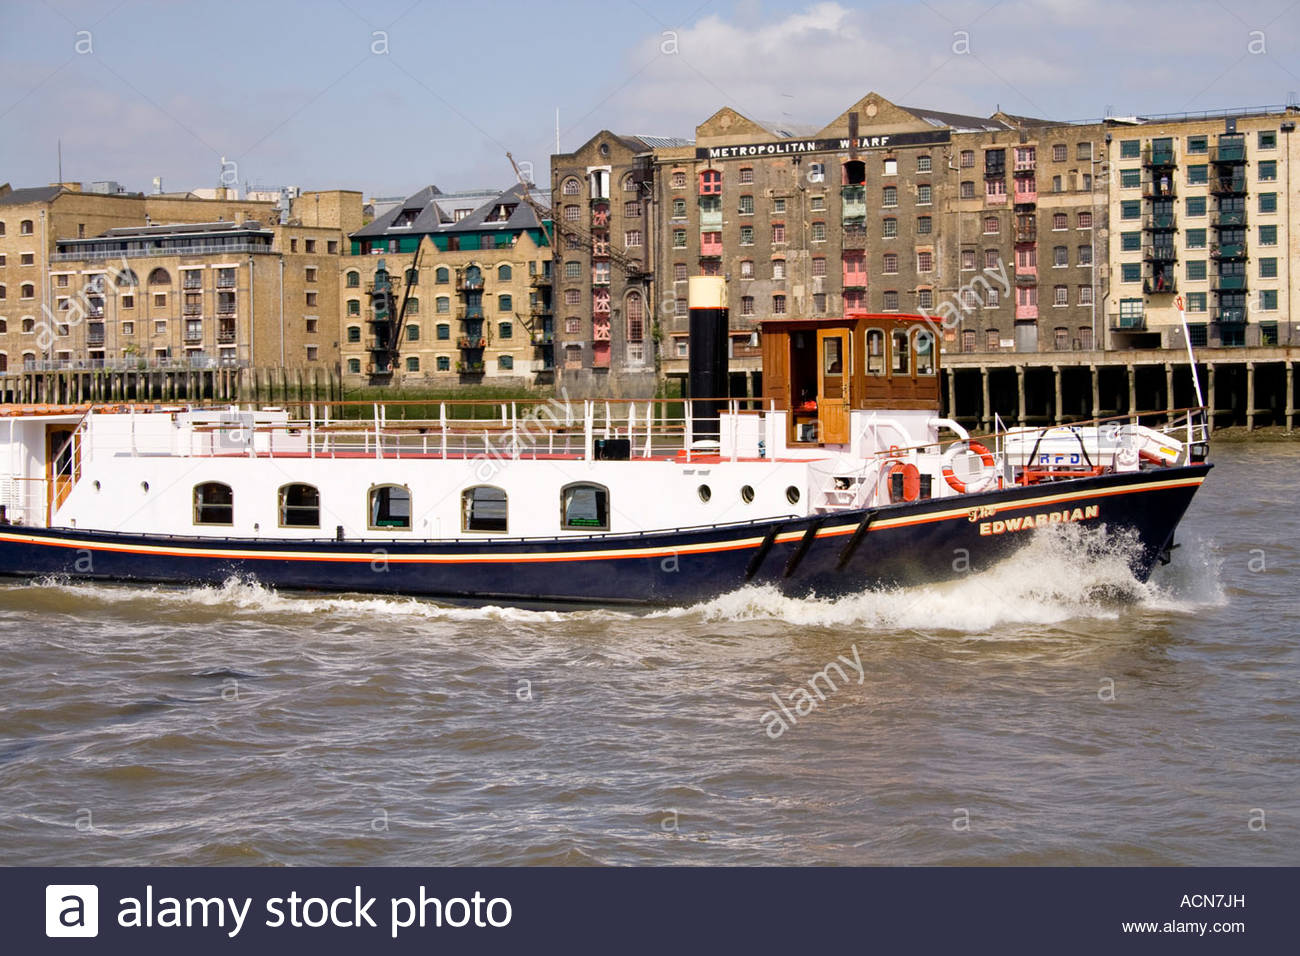 richard branson's edwardian luxury charter cruiser on the thames london Stock Photo